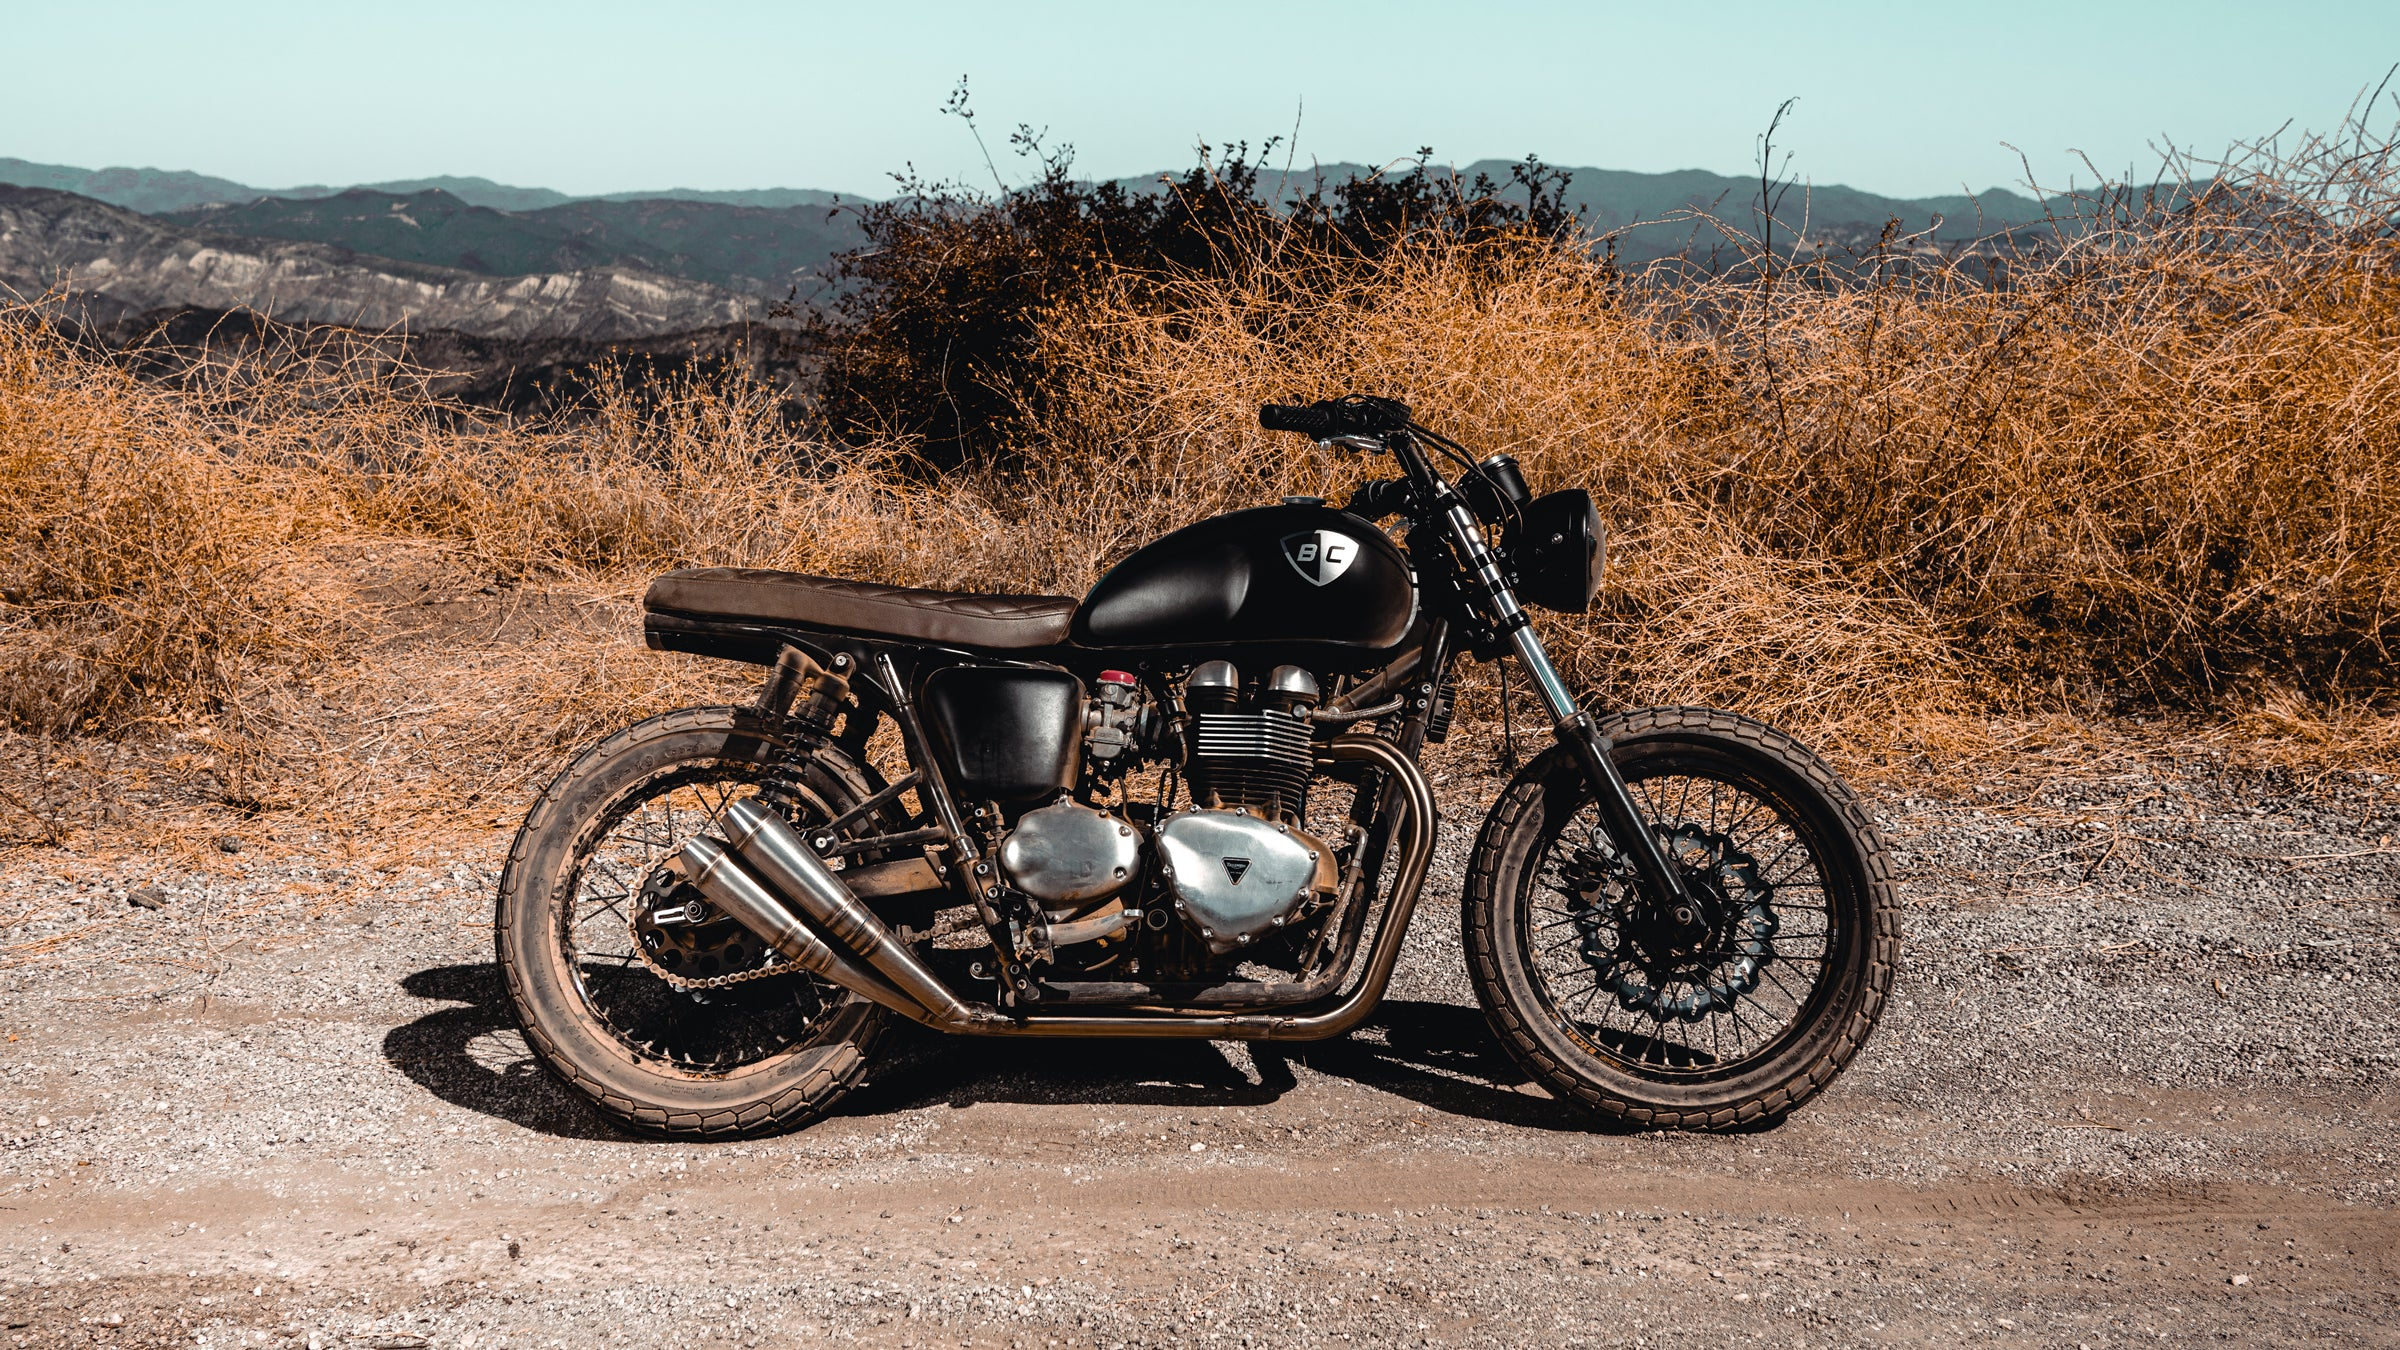 British Customs 2-2 Tracker Pipes Triumph